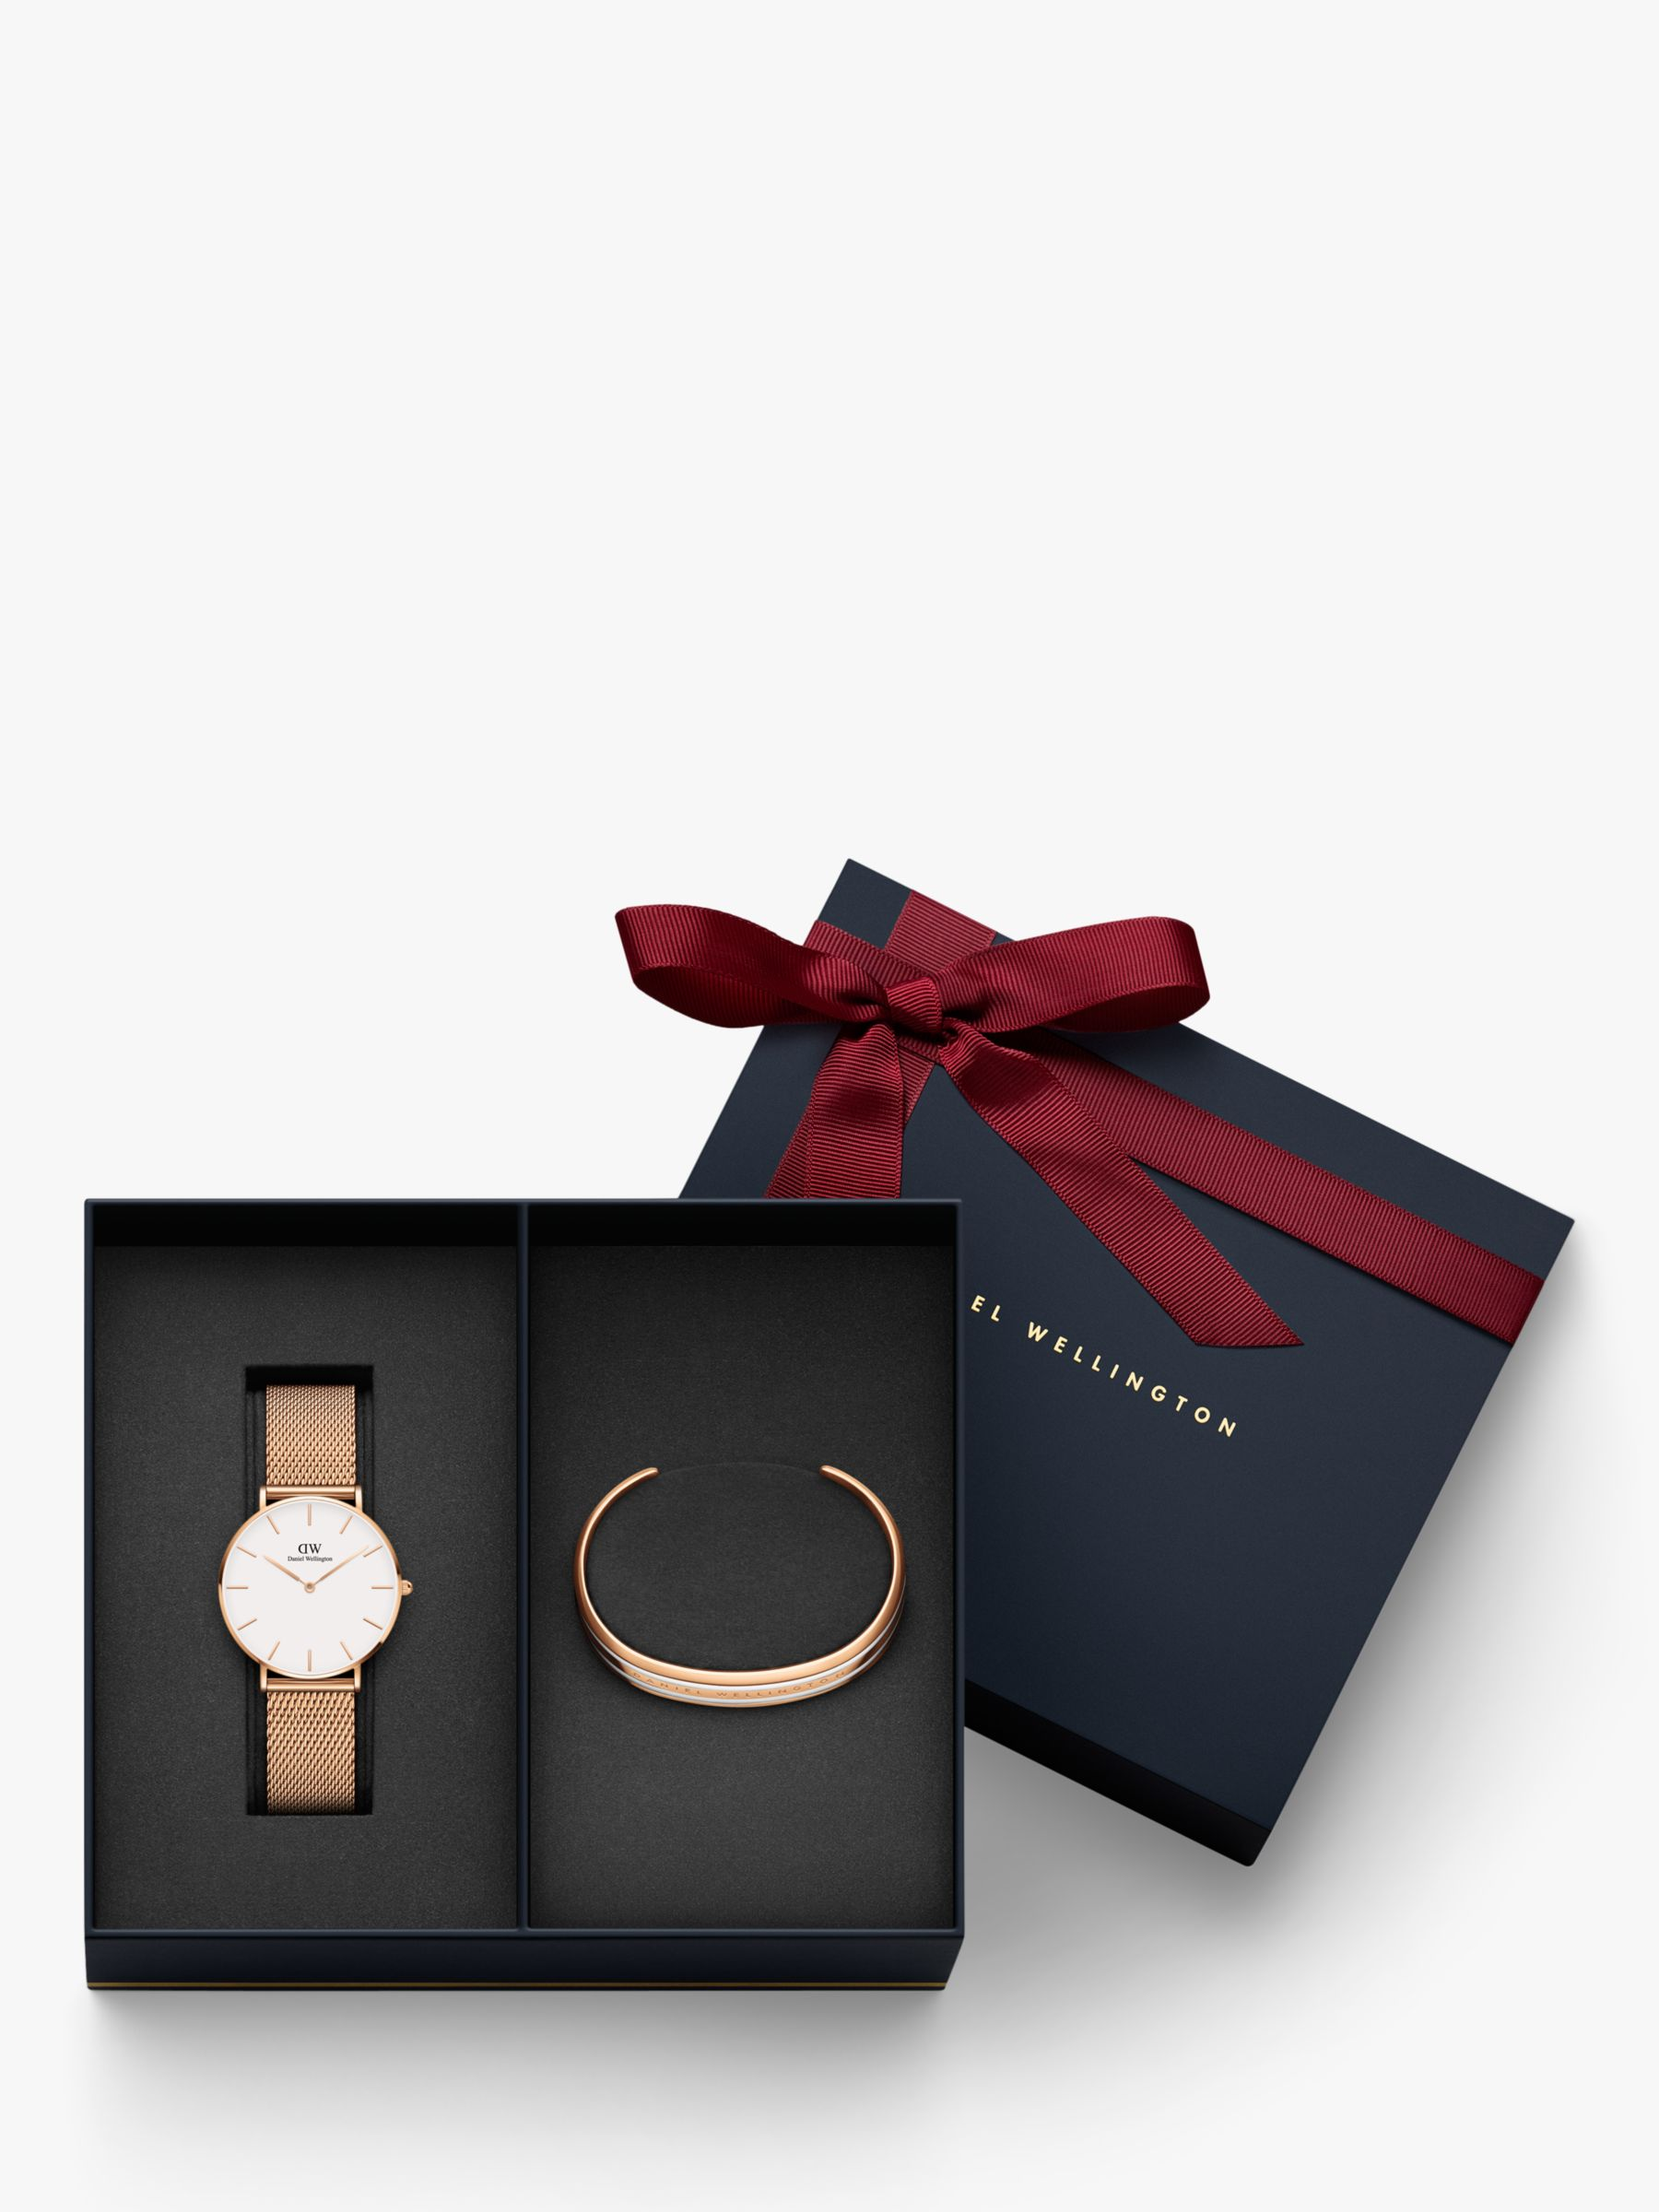 Daniel Wellington Daniel Wellington DW00500618 Women's 36mm Mesh Bracelet Strap Watch and Bangle Gift Set, Rose Gold/White